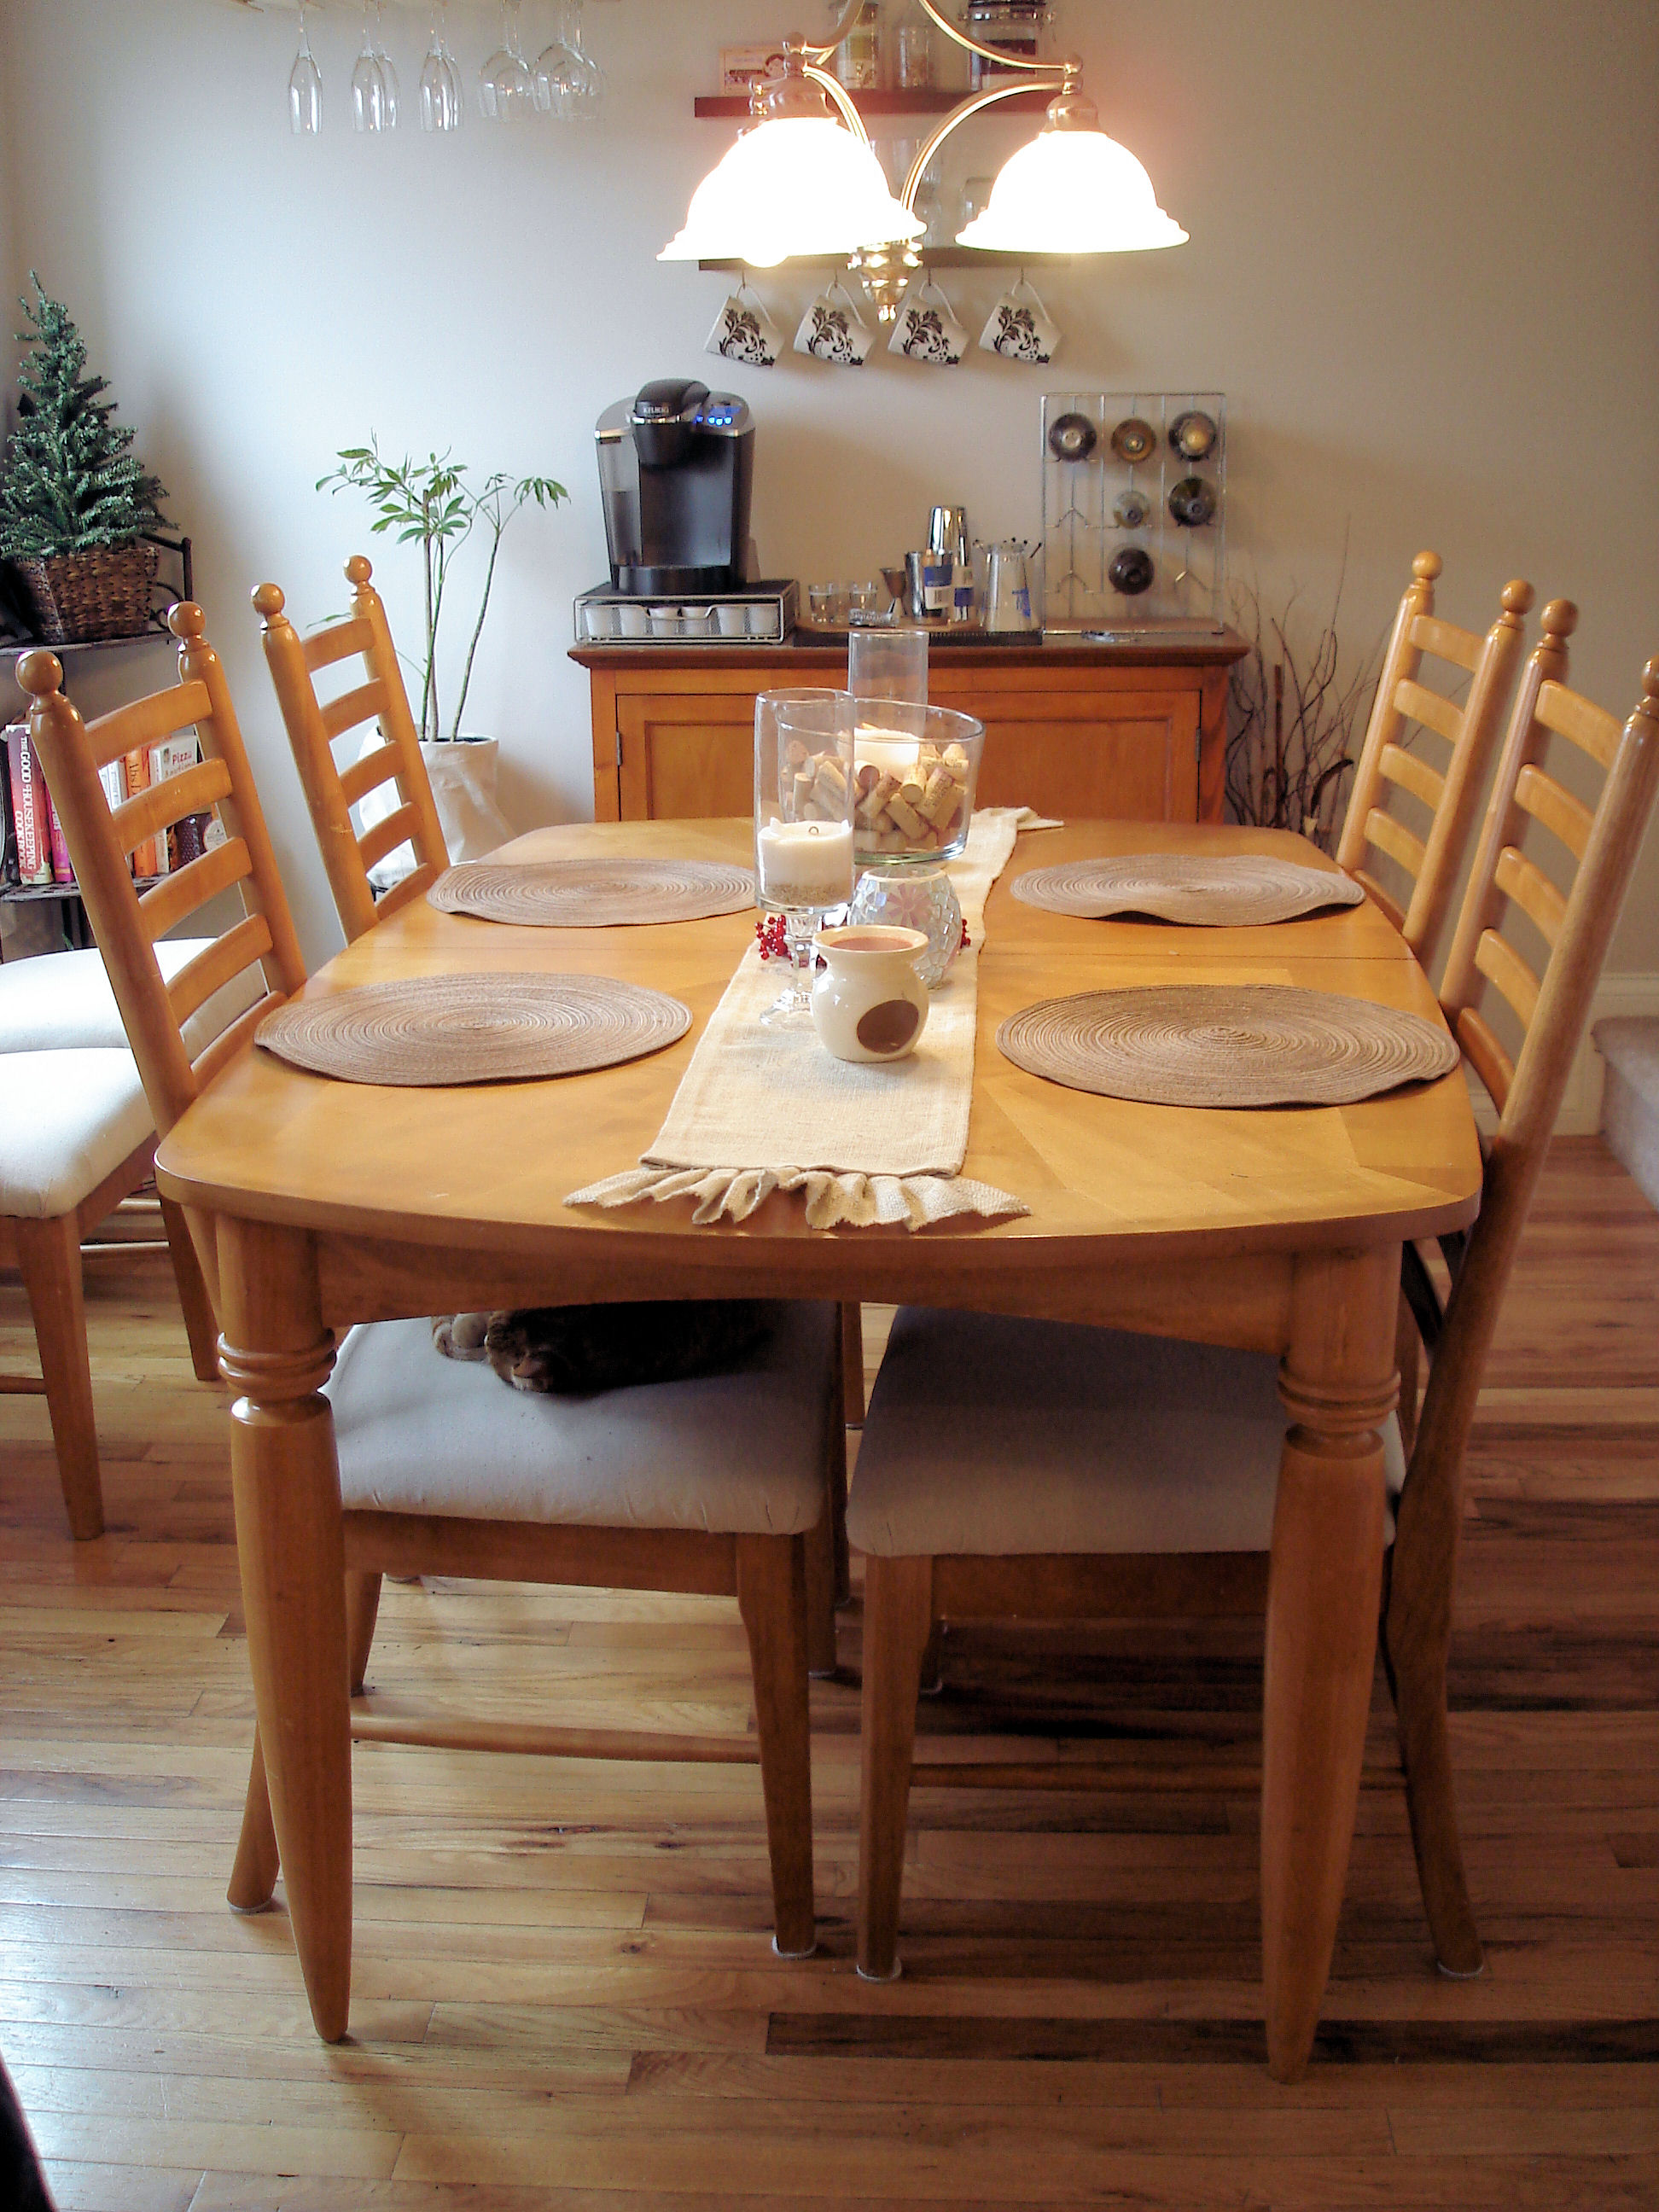 Sandpaper: A Hate Story (or how I refinished my dining set)